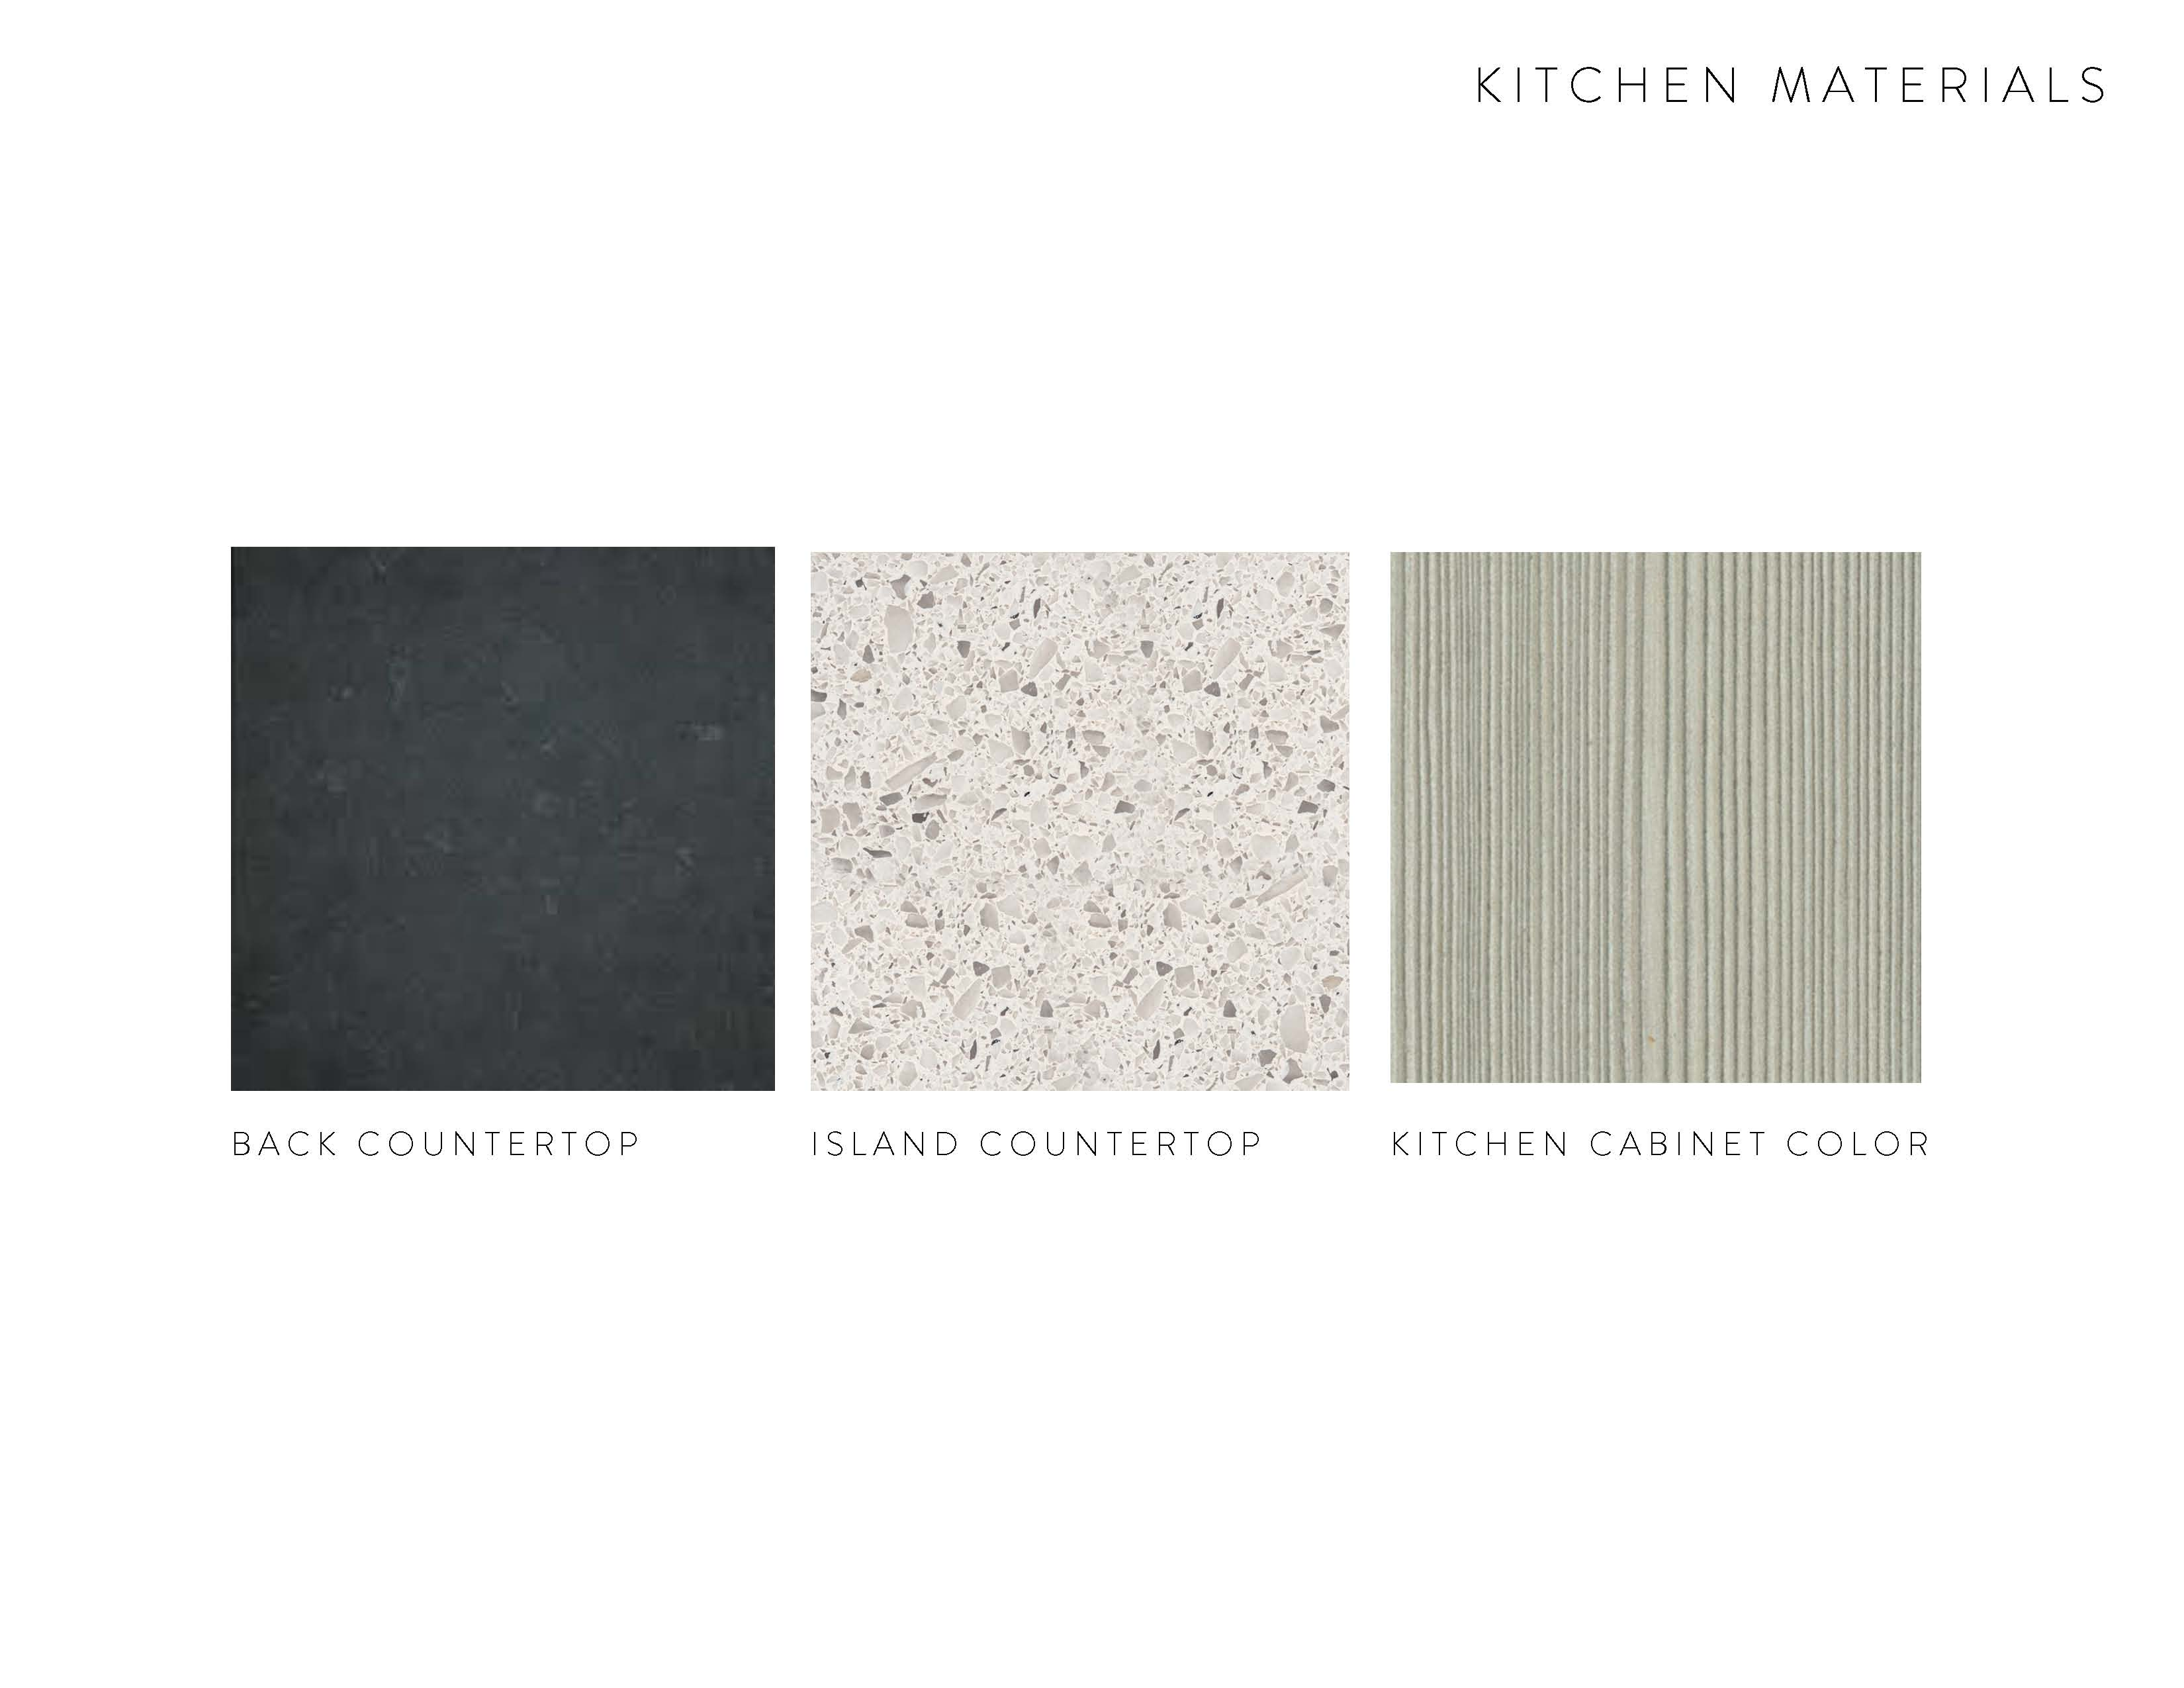 Kitchen Cabinet Parts Material Photo   3